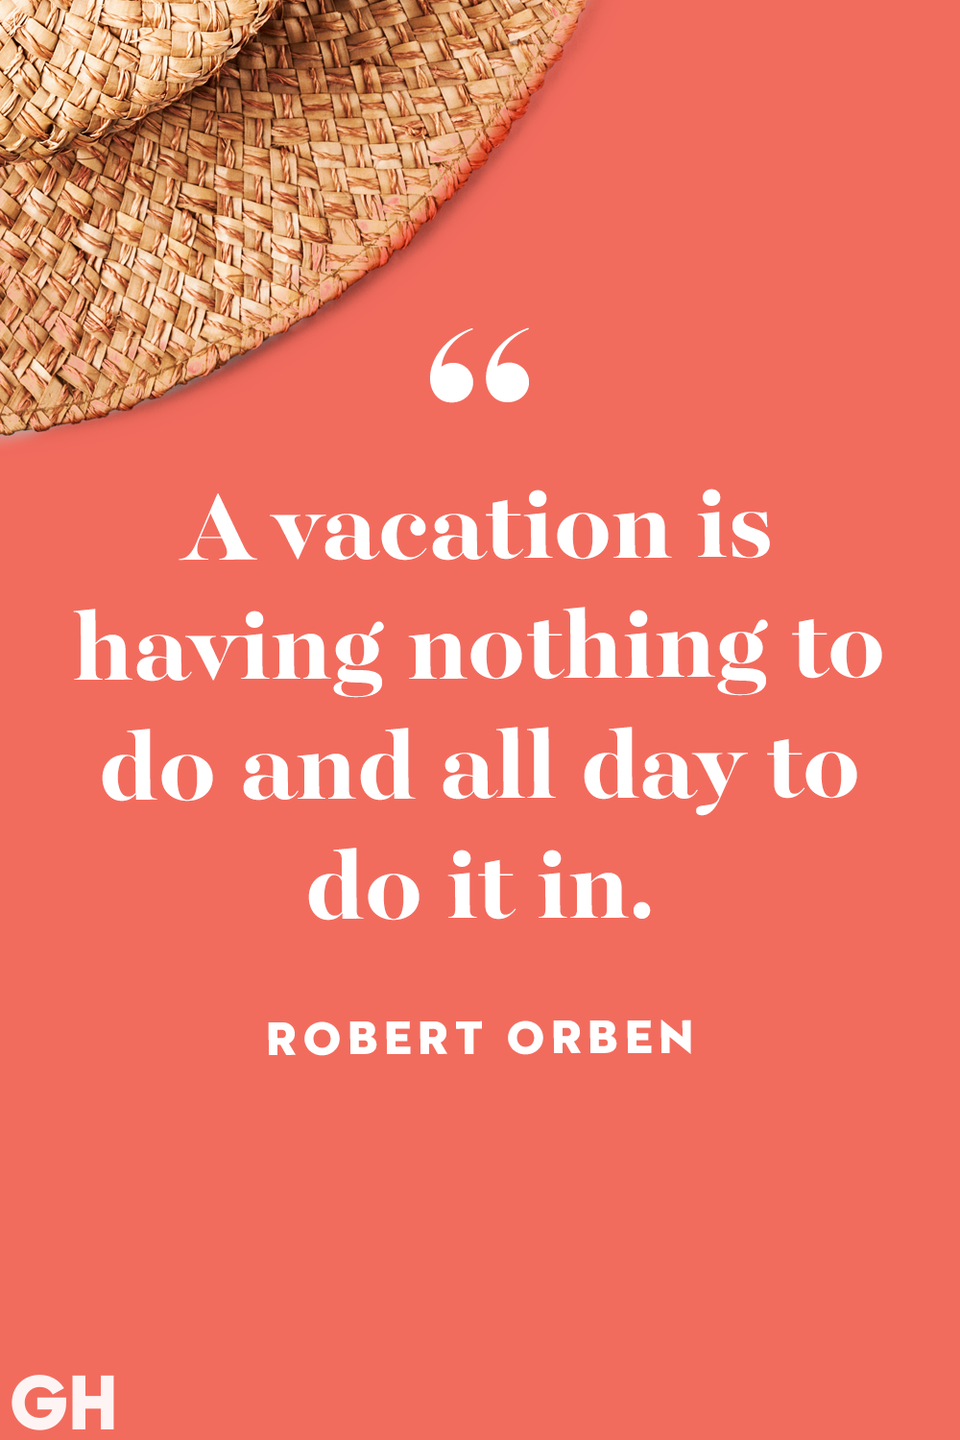 <p>A vacation is having nothing to do and all day to do it in.</p>